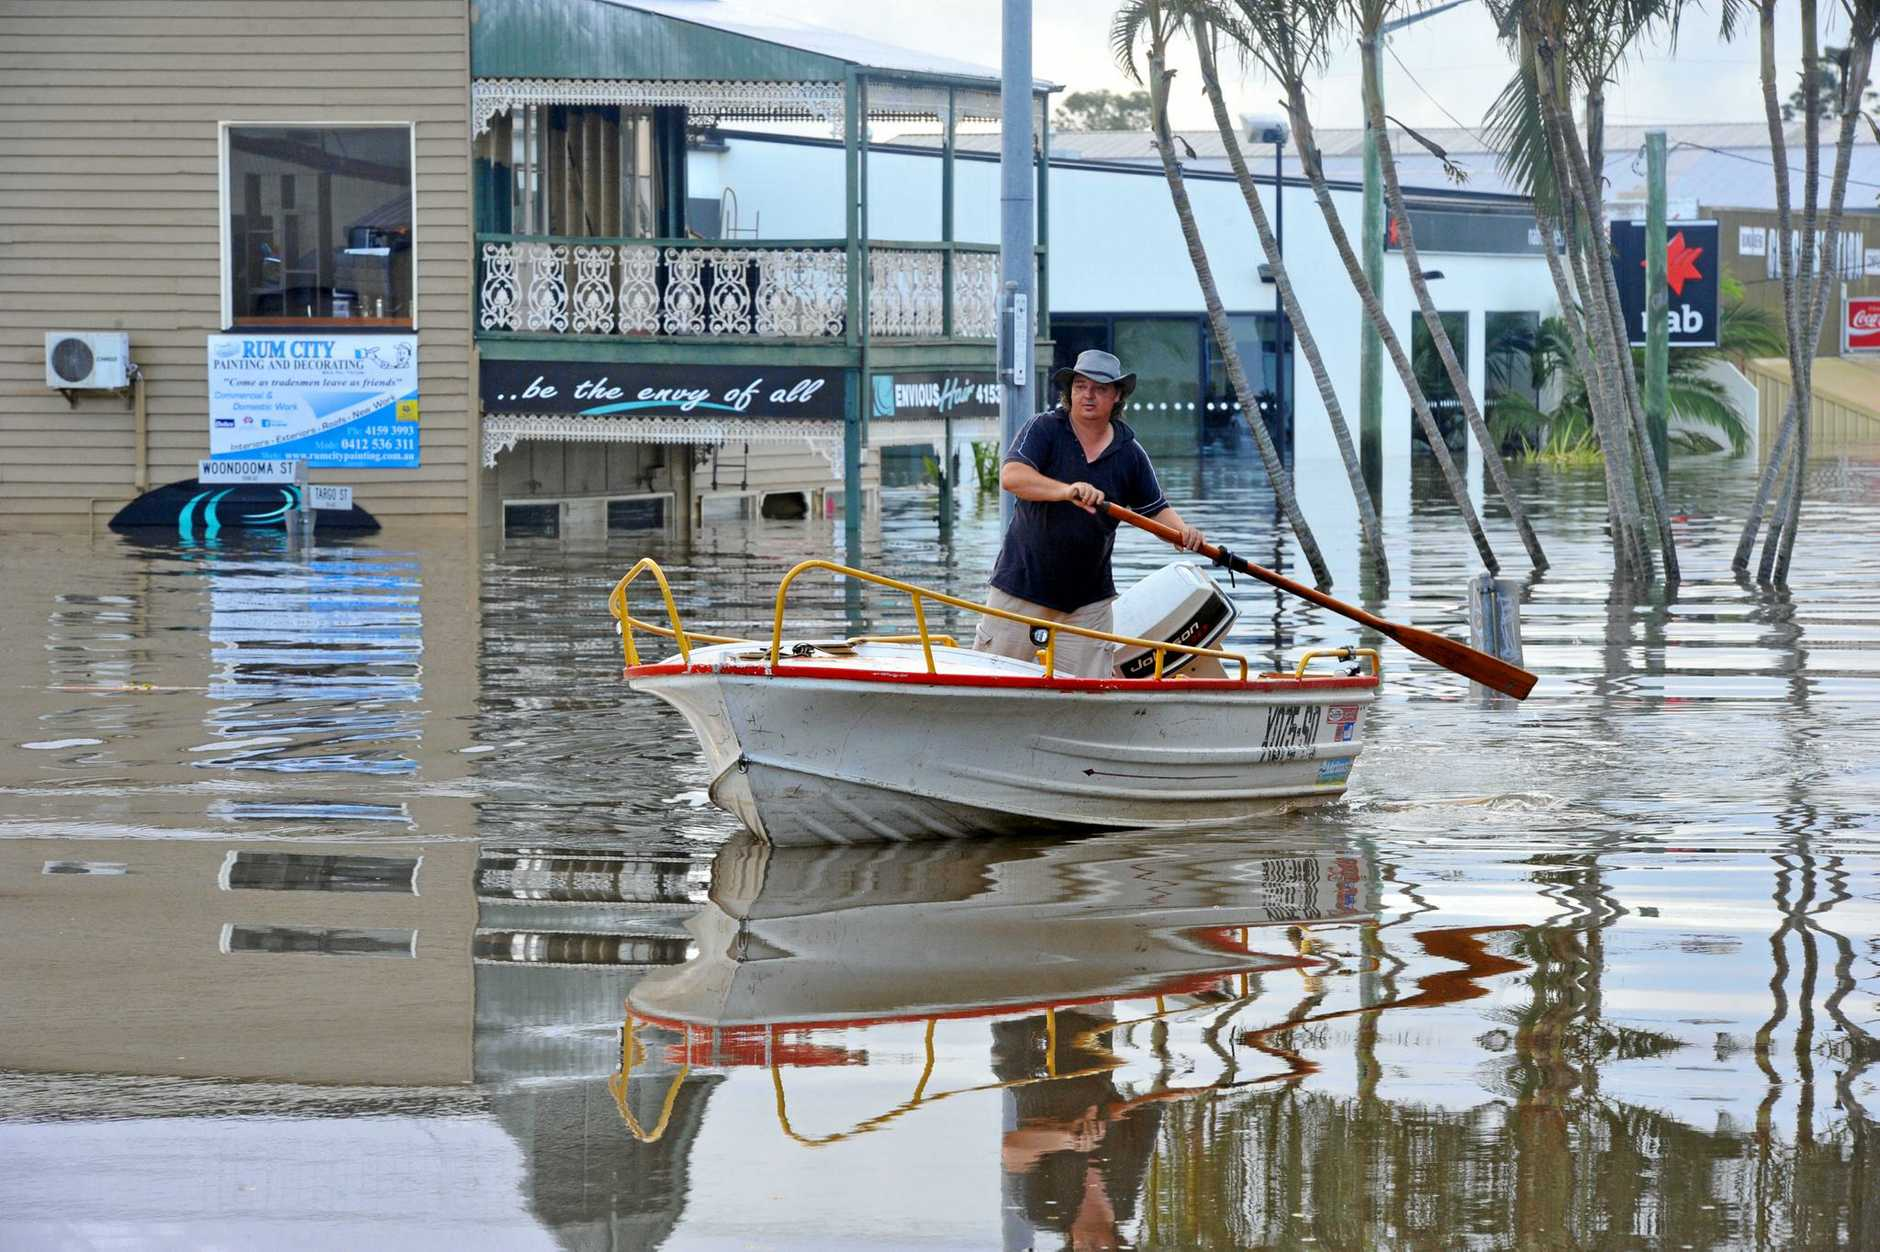 NOT AGAIN: Envious Hair on the corner of Targo and Woondooma streets is flooded out once again as record level floodwaters swallow Bundaberg. Photo: Max Fleet / NewsMail